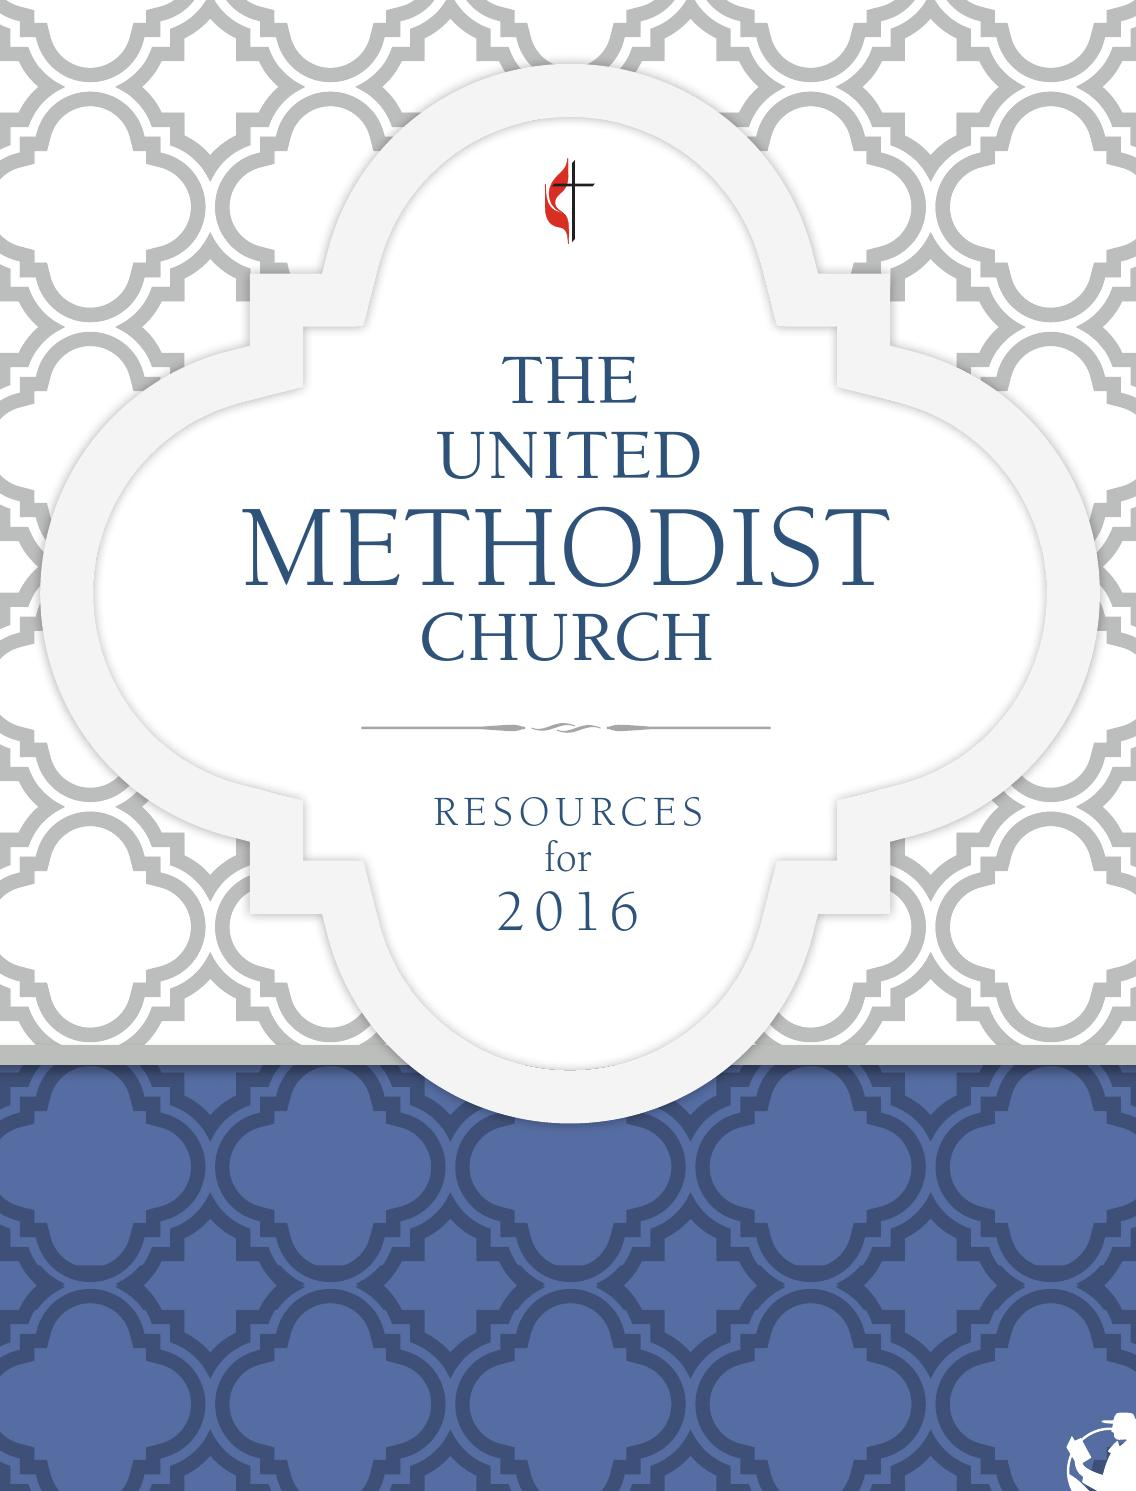 Resources for the united methodist church 2016 by united methodist resources for the united methodist church 2016 by united methodist publishing house cokesbury issuu fandeluxe Gallery